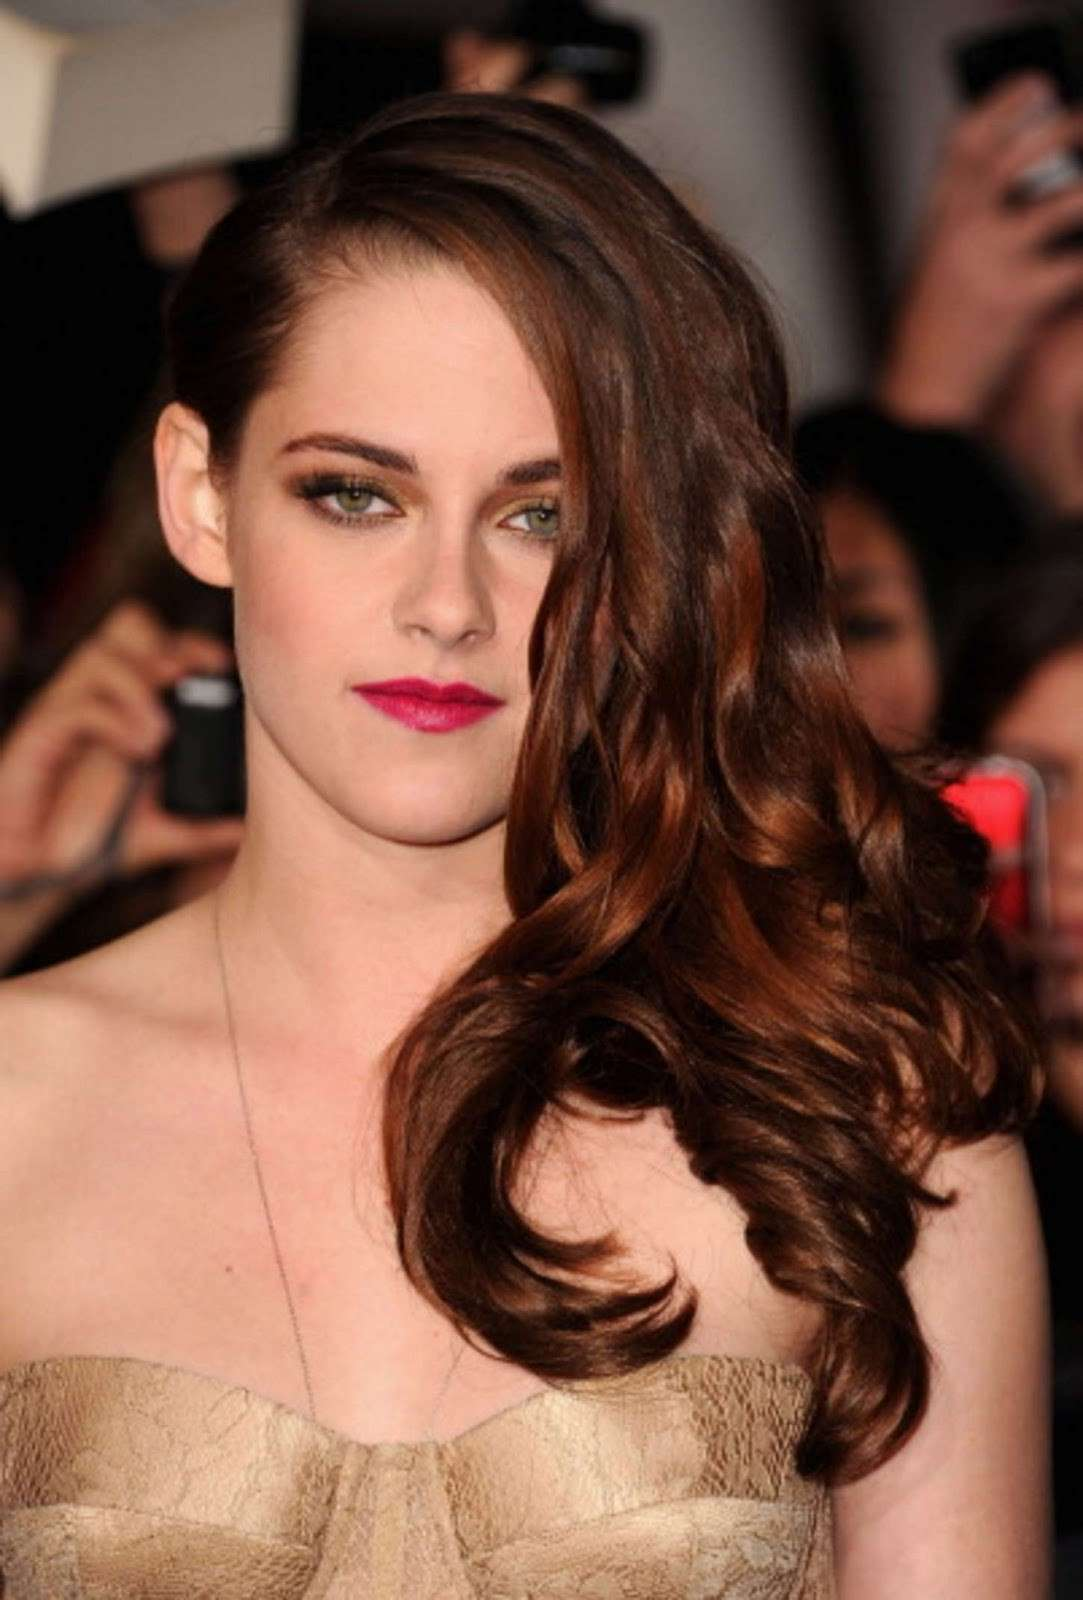 Kristen Stewart con una bellissima acconciatura sul red carpet